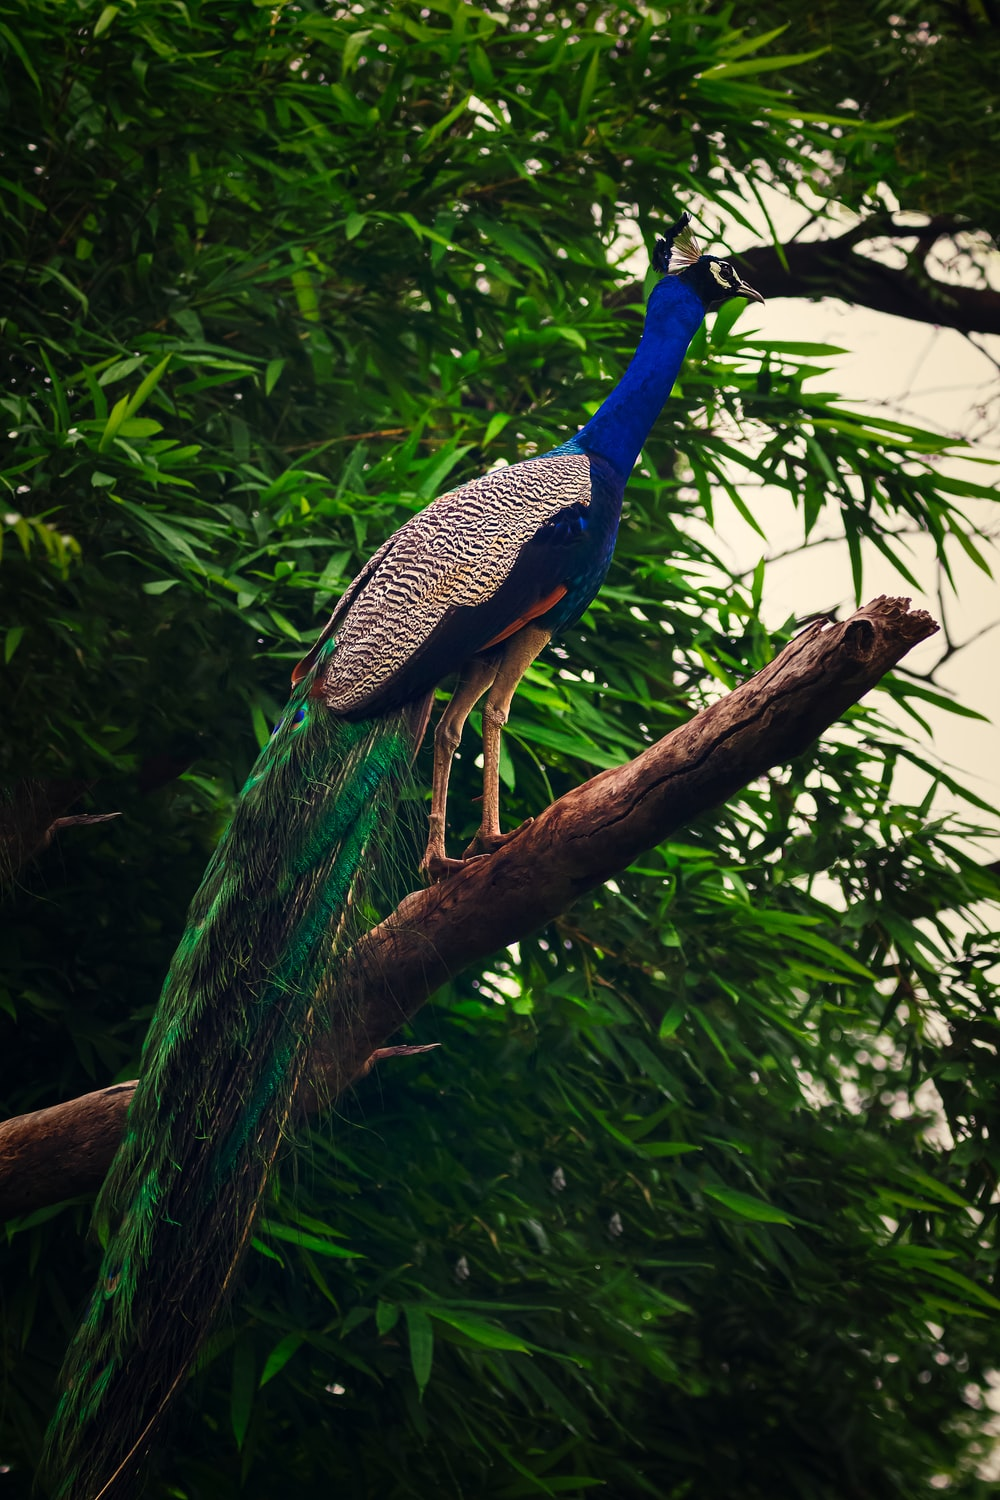 peacock perching on tree branch